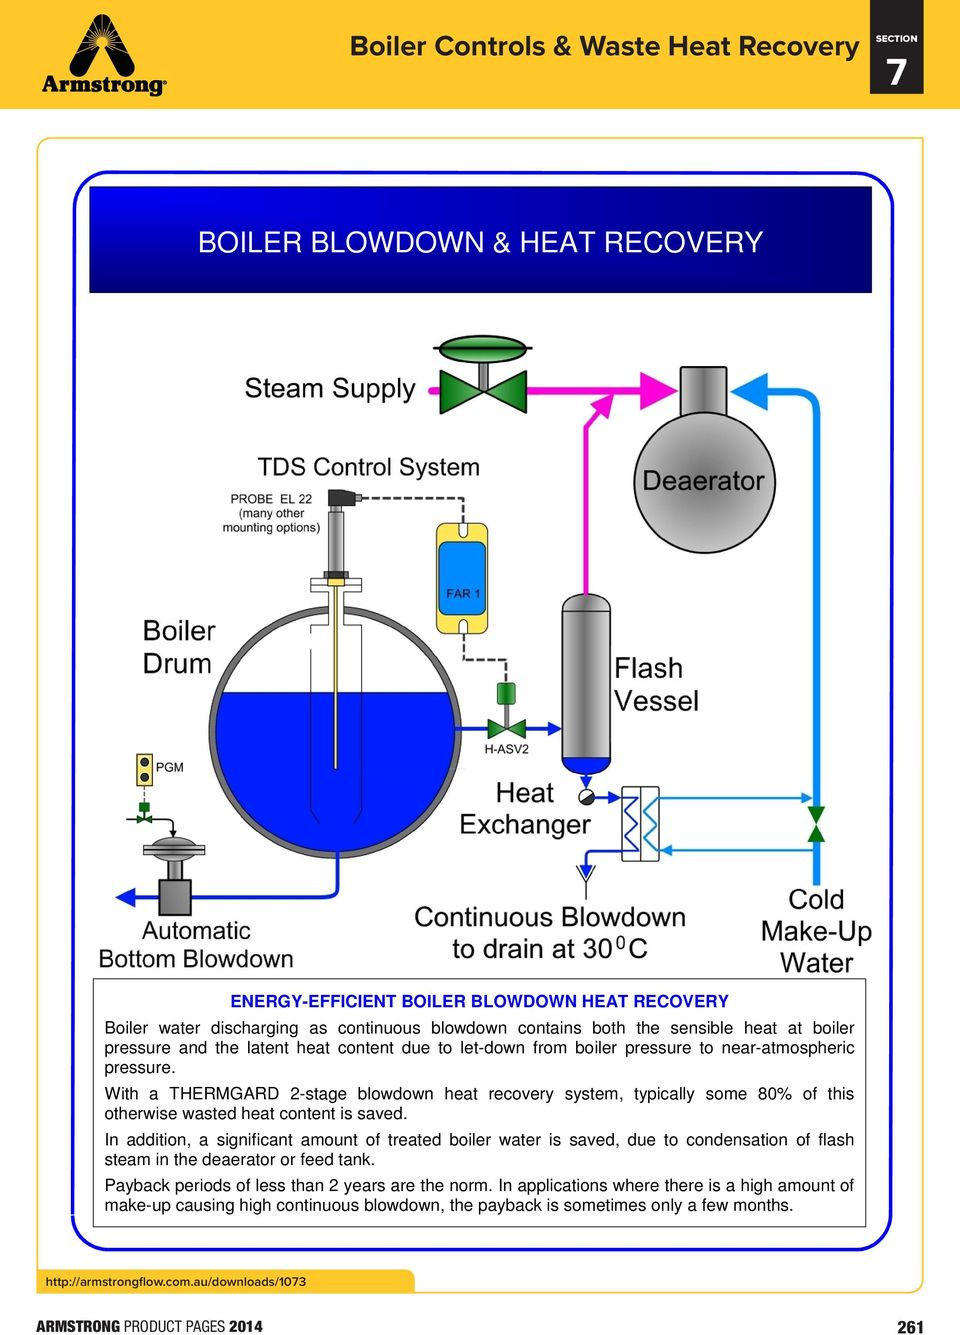 Igema boiler level tds controls pdf with a thermgard 2 stage blowdown heat recovery system typically some 80 of fandeluxe Images